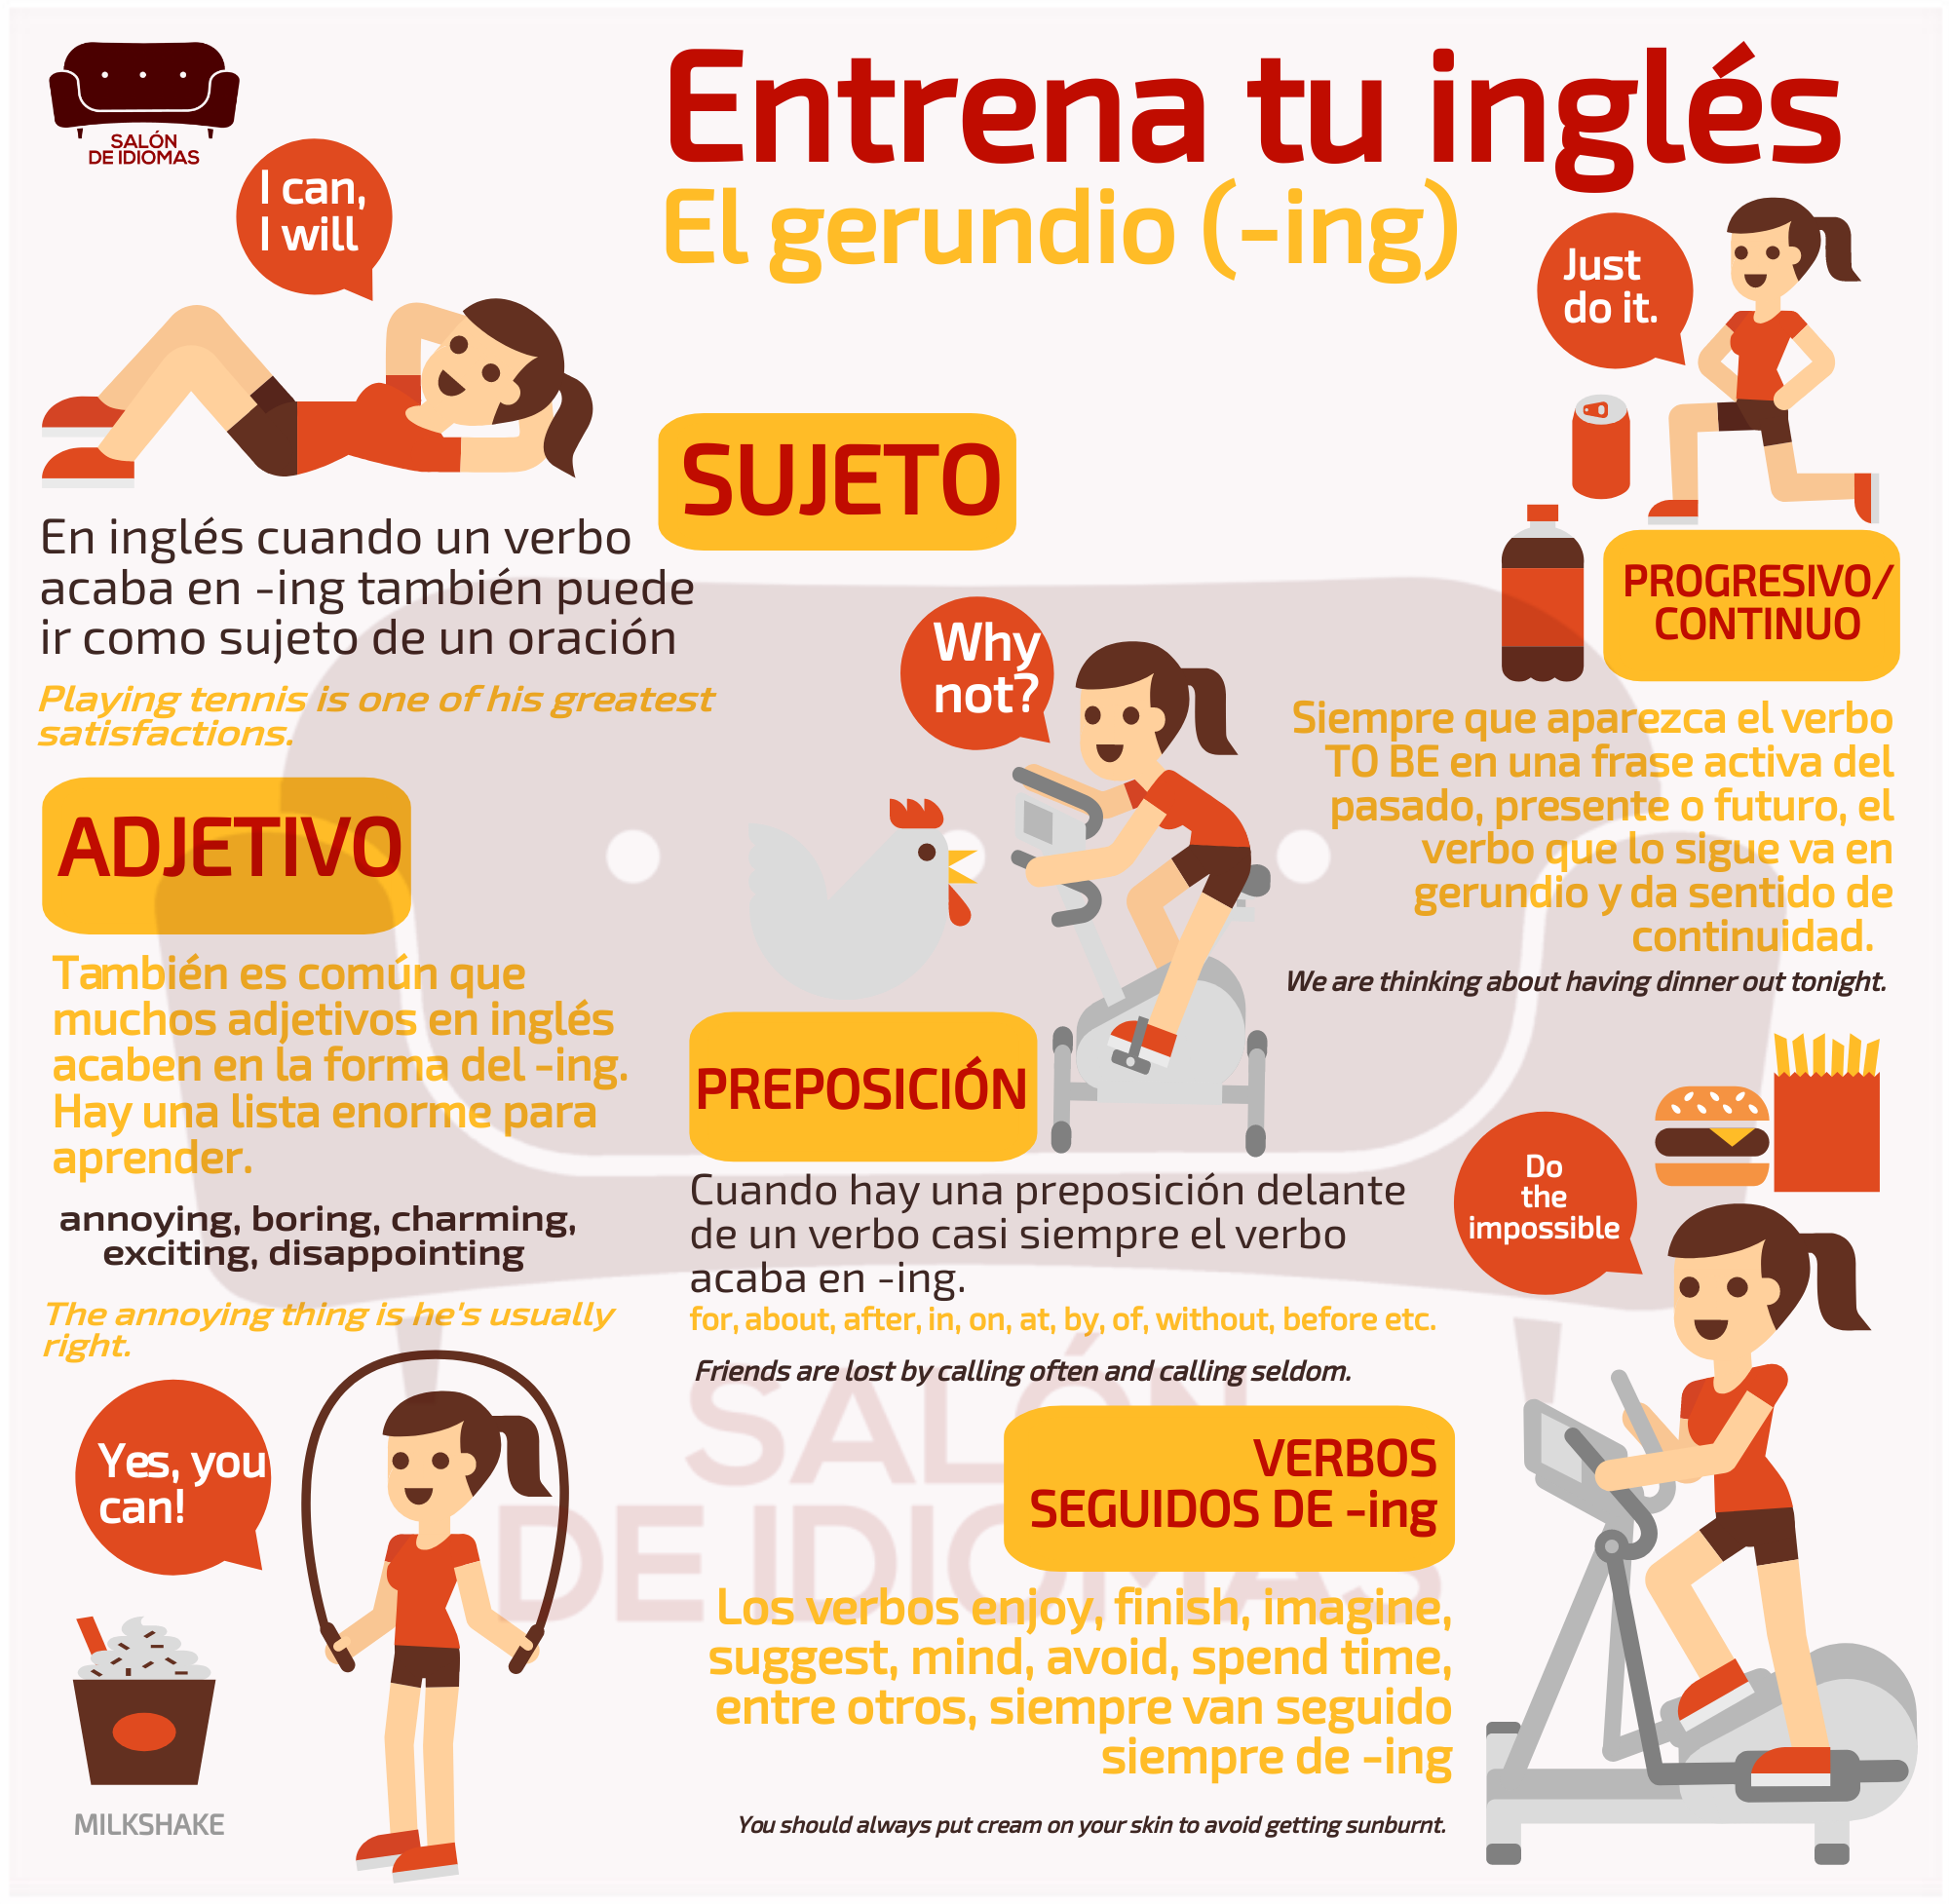 El Gerundio En Inglés Y Sus Usos Sujetos En Ingles Verbo To Be Ingles